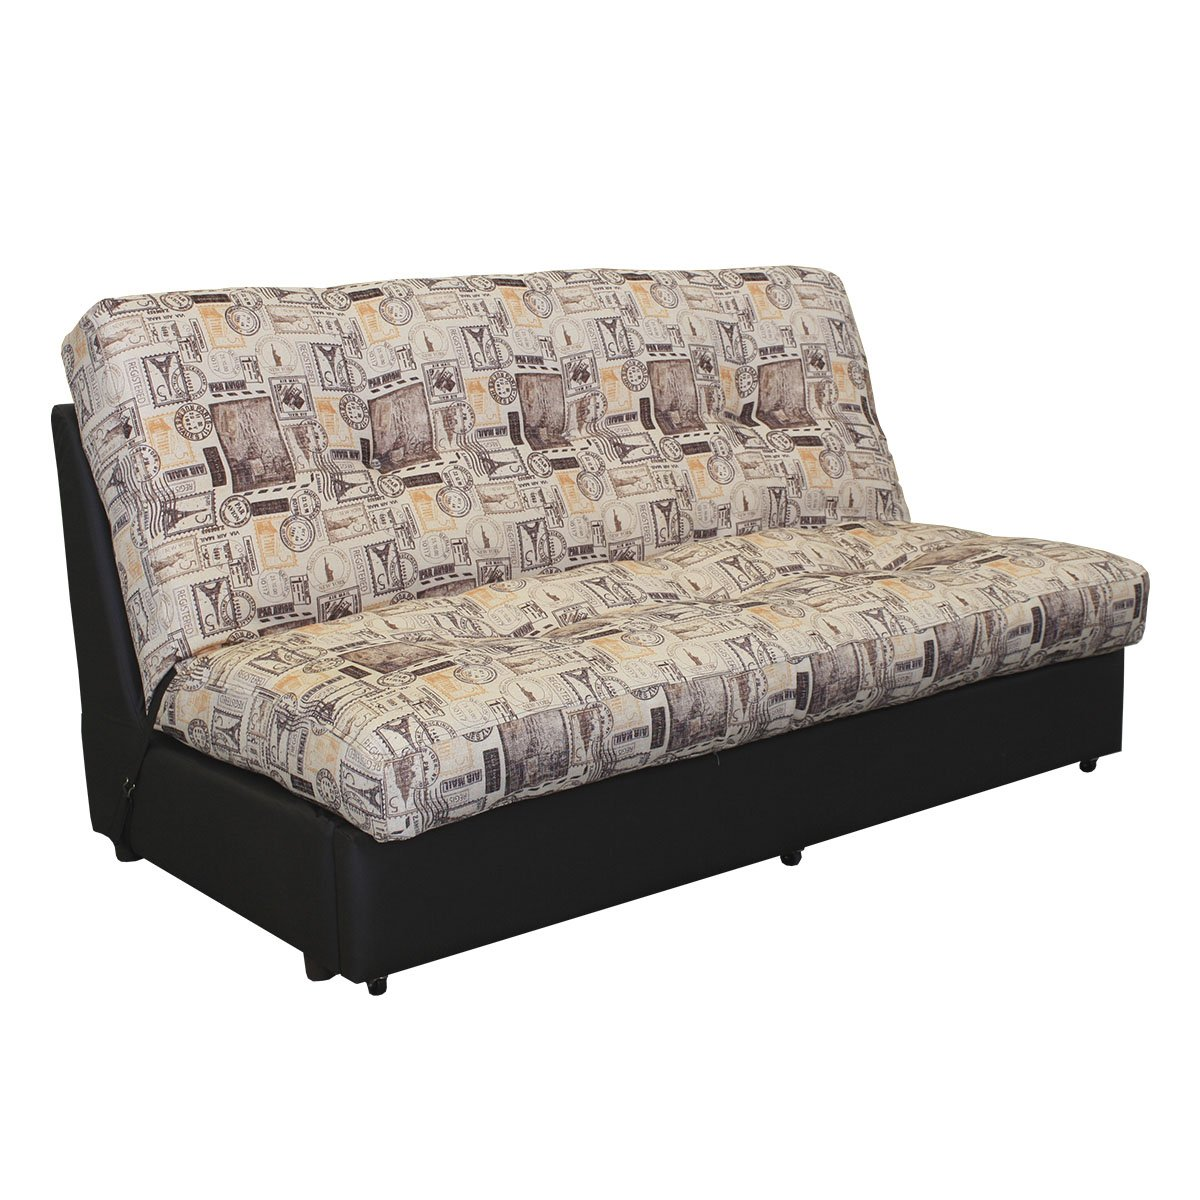 Sofa cama sofas camas sofa brownsvilleclaimhelp thesofa for Cama cama cama cama cama